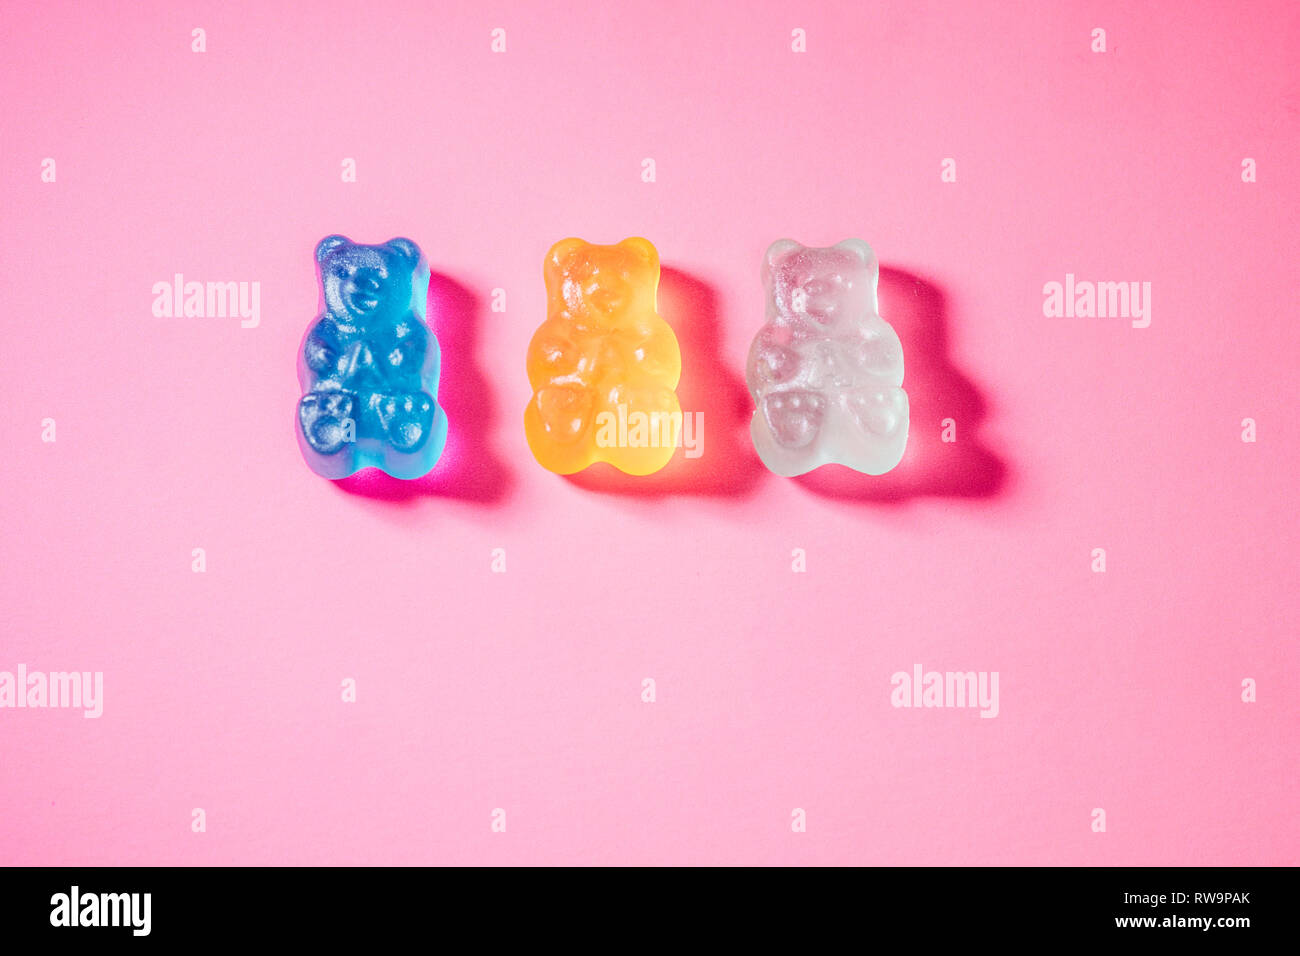 A close-up of three brightly-colored gummy bears, photographed on a pink background with poppy studio light. Stock Photo